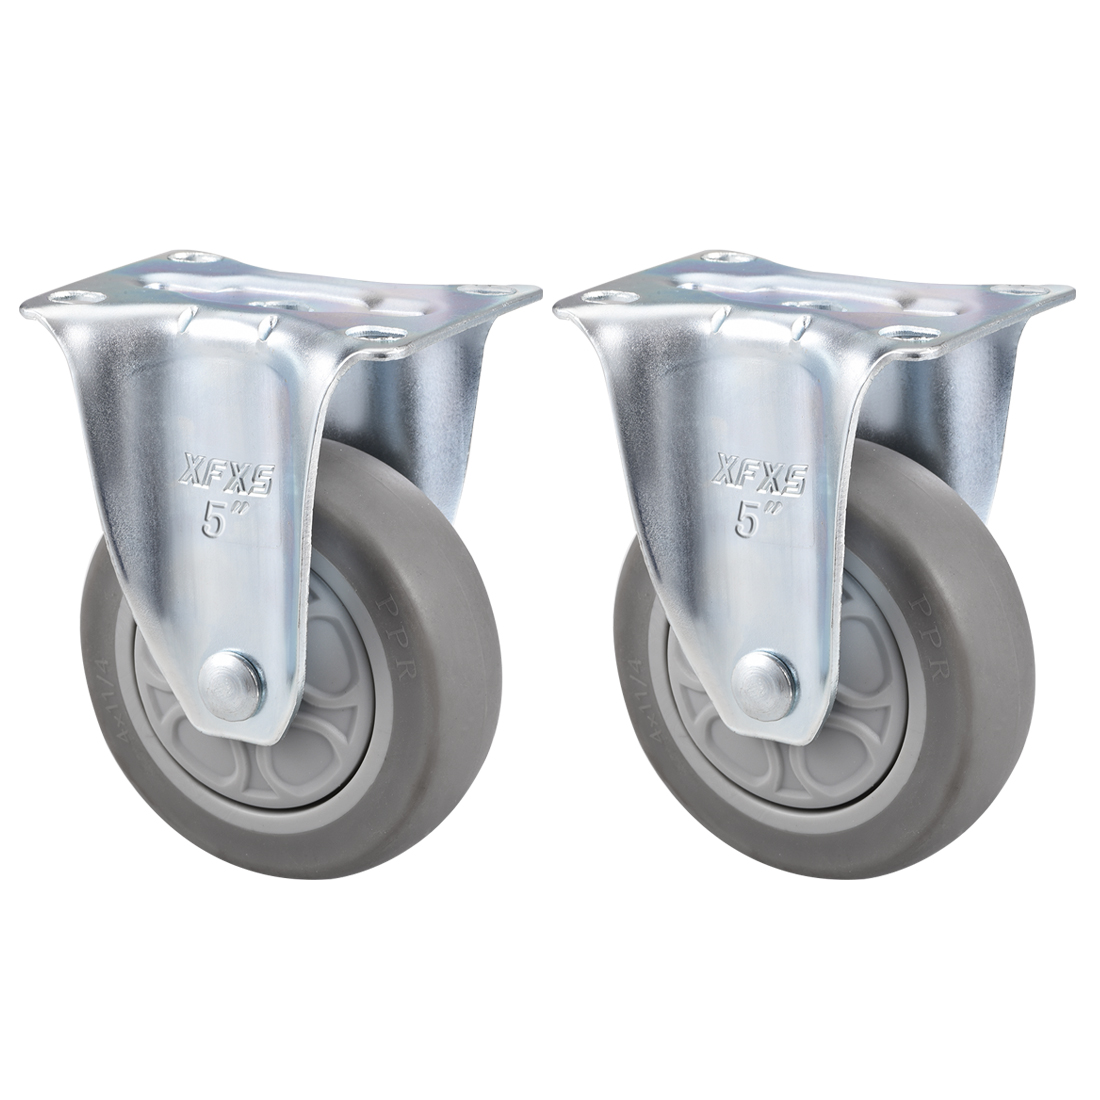 Fixed Caster Wheels 5inch TPR Caster Top Plate Mounted 308lb Capacity , 2pcs